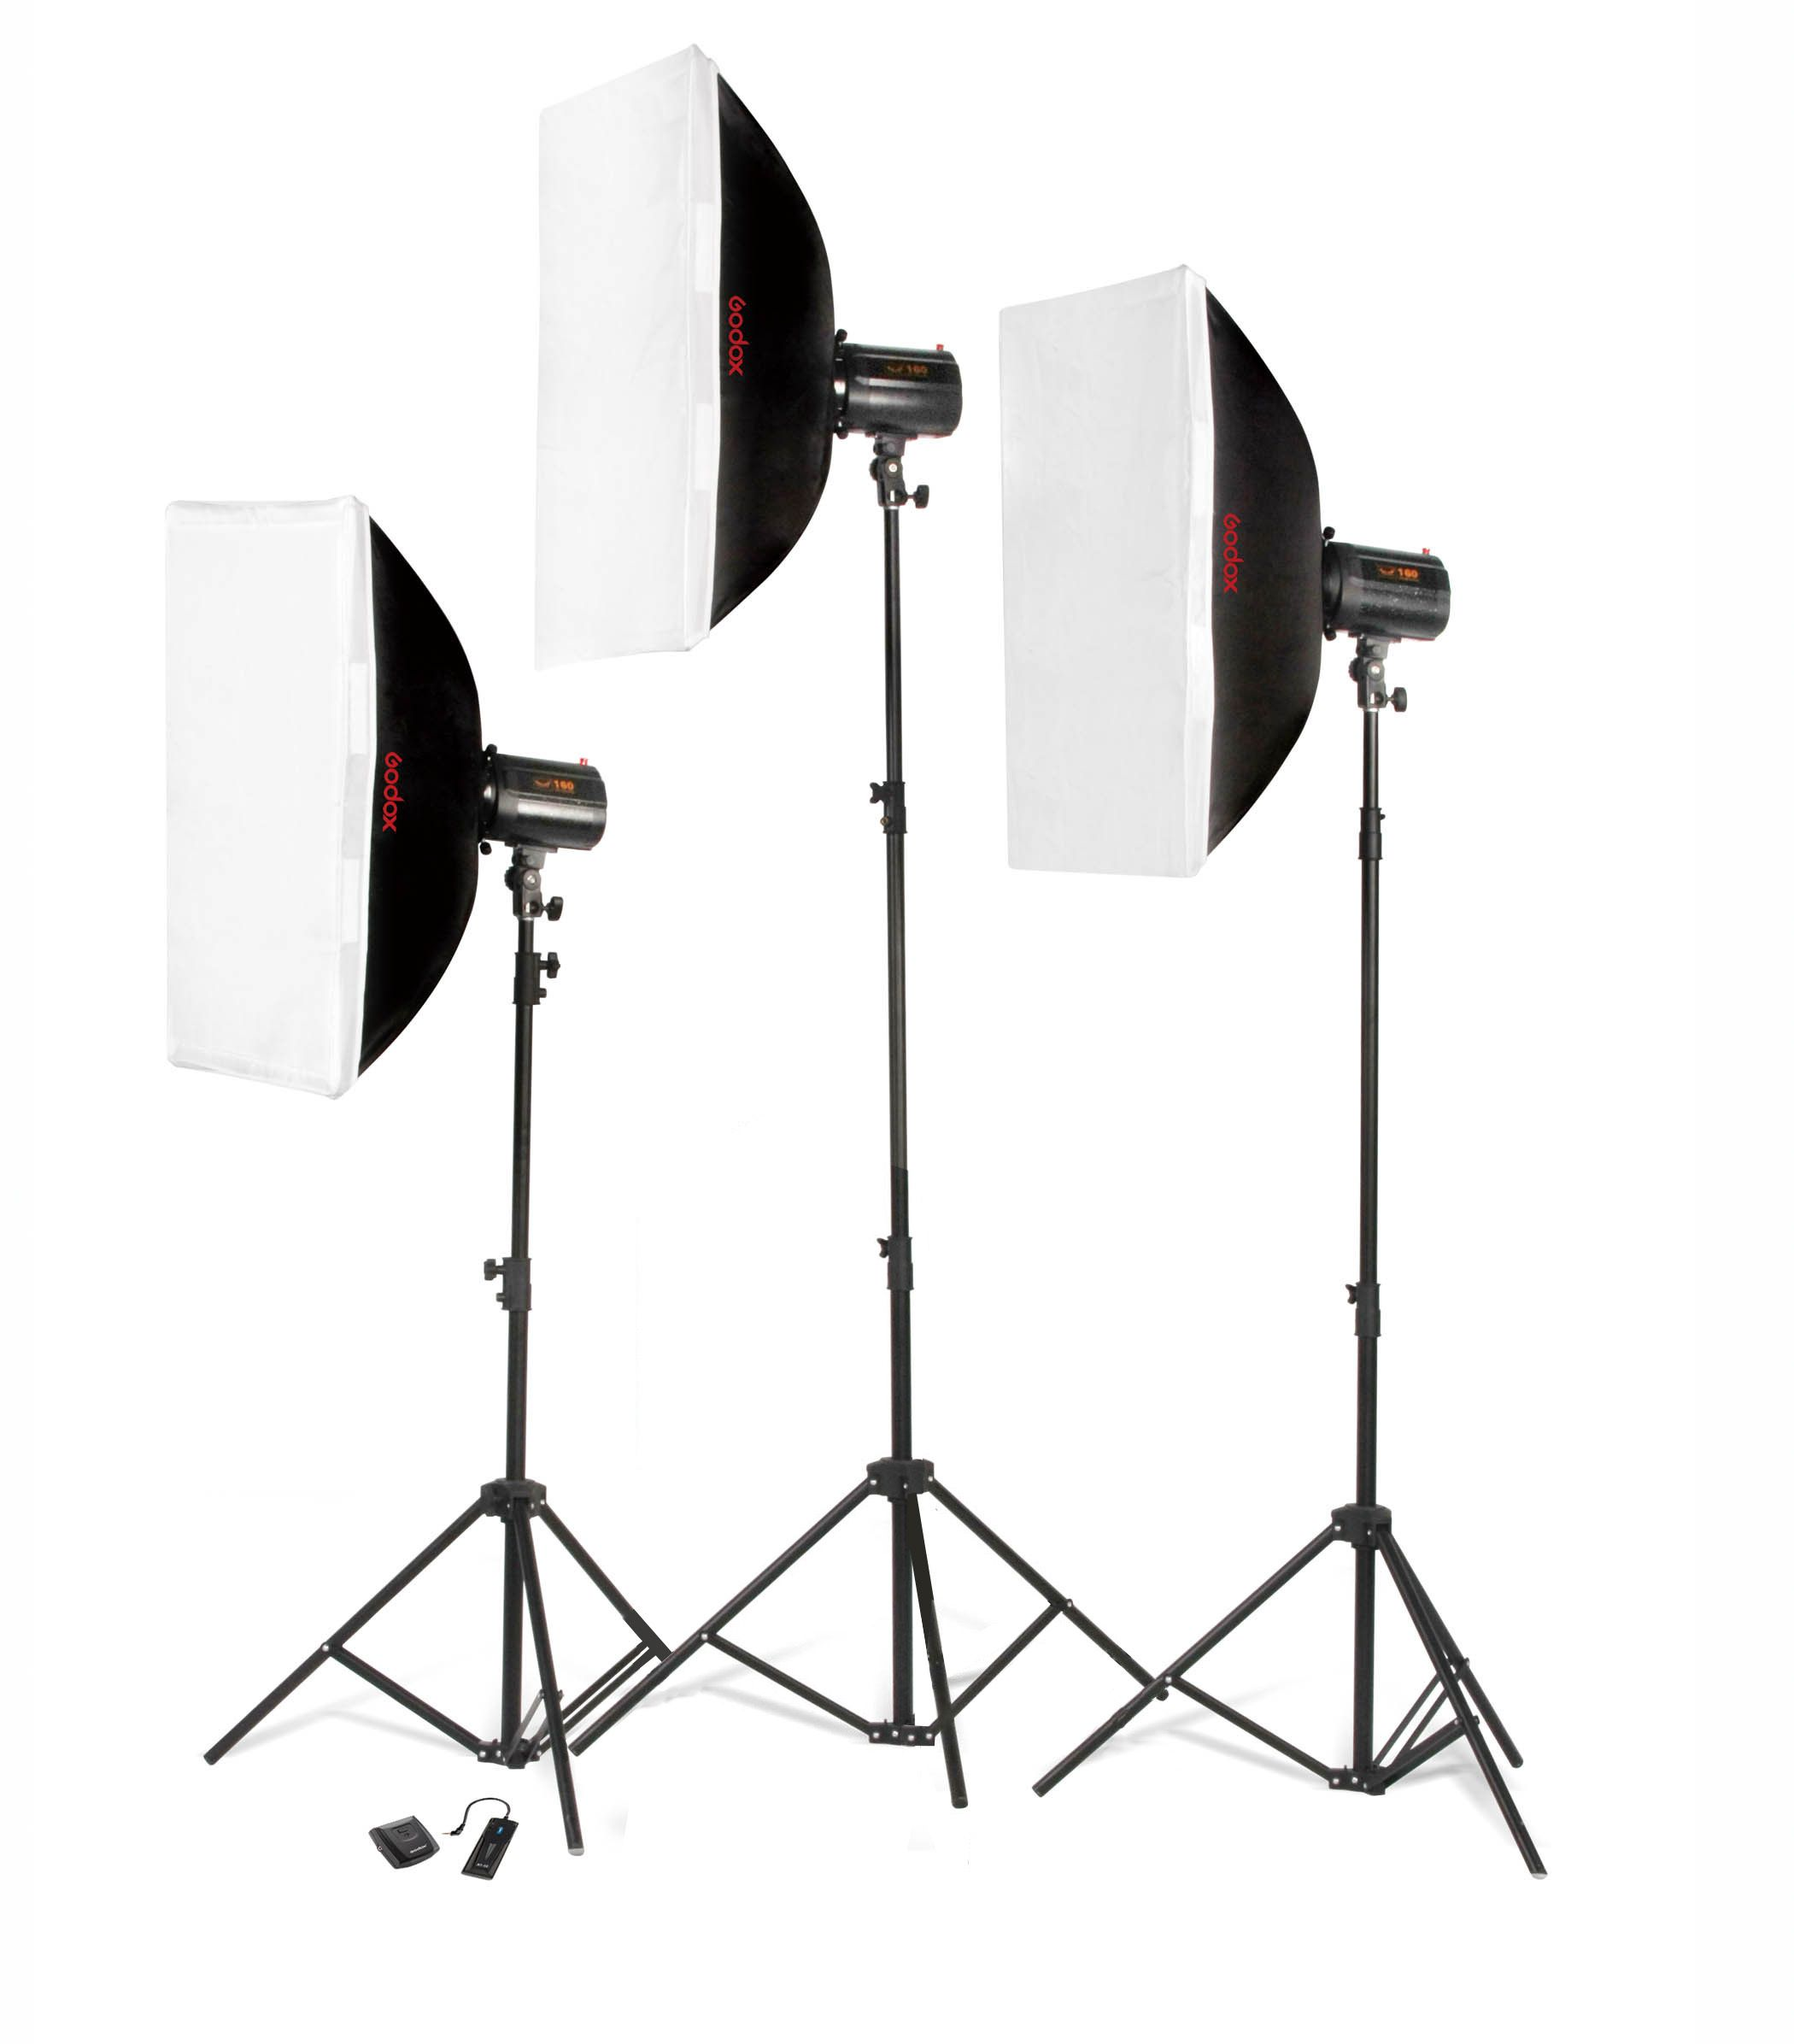 lightbox bulbs item photo diffuser accessories softbox light photography lamps kit led in stands for equipment lighting studio